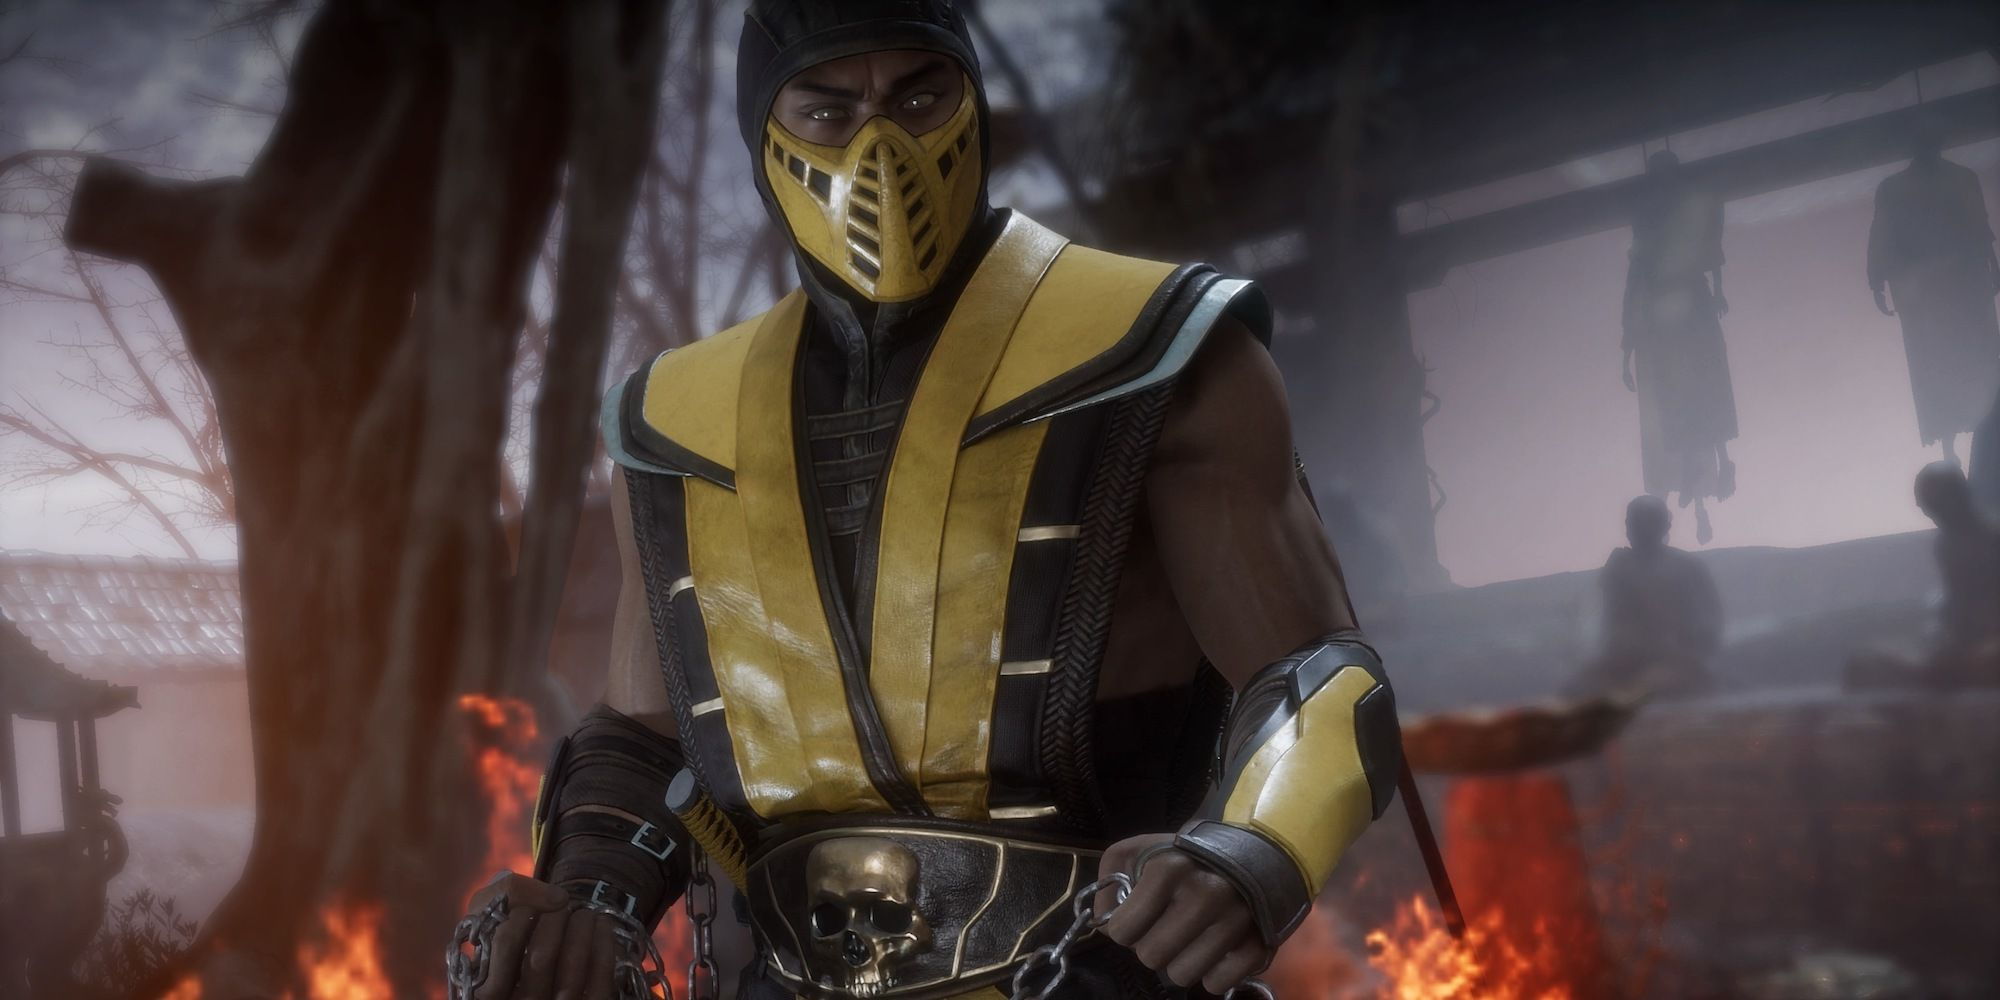 Mortal Kombat 2021 Movie Trailer May Arrive This Summer